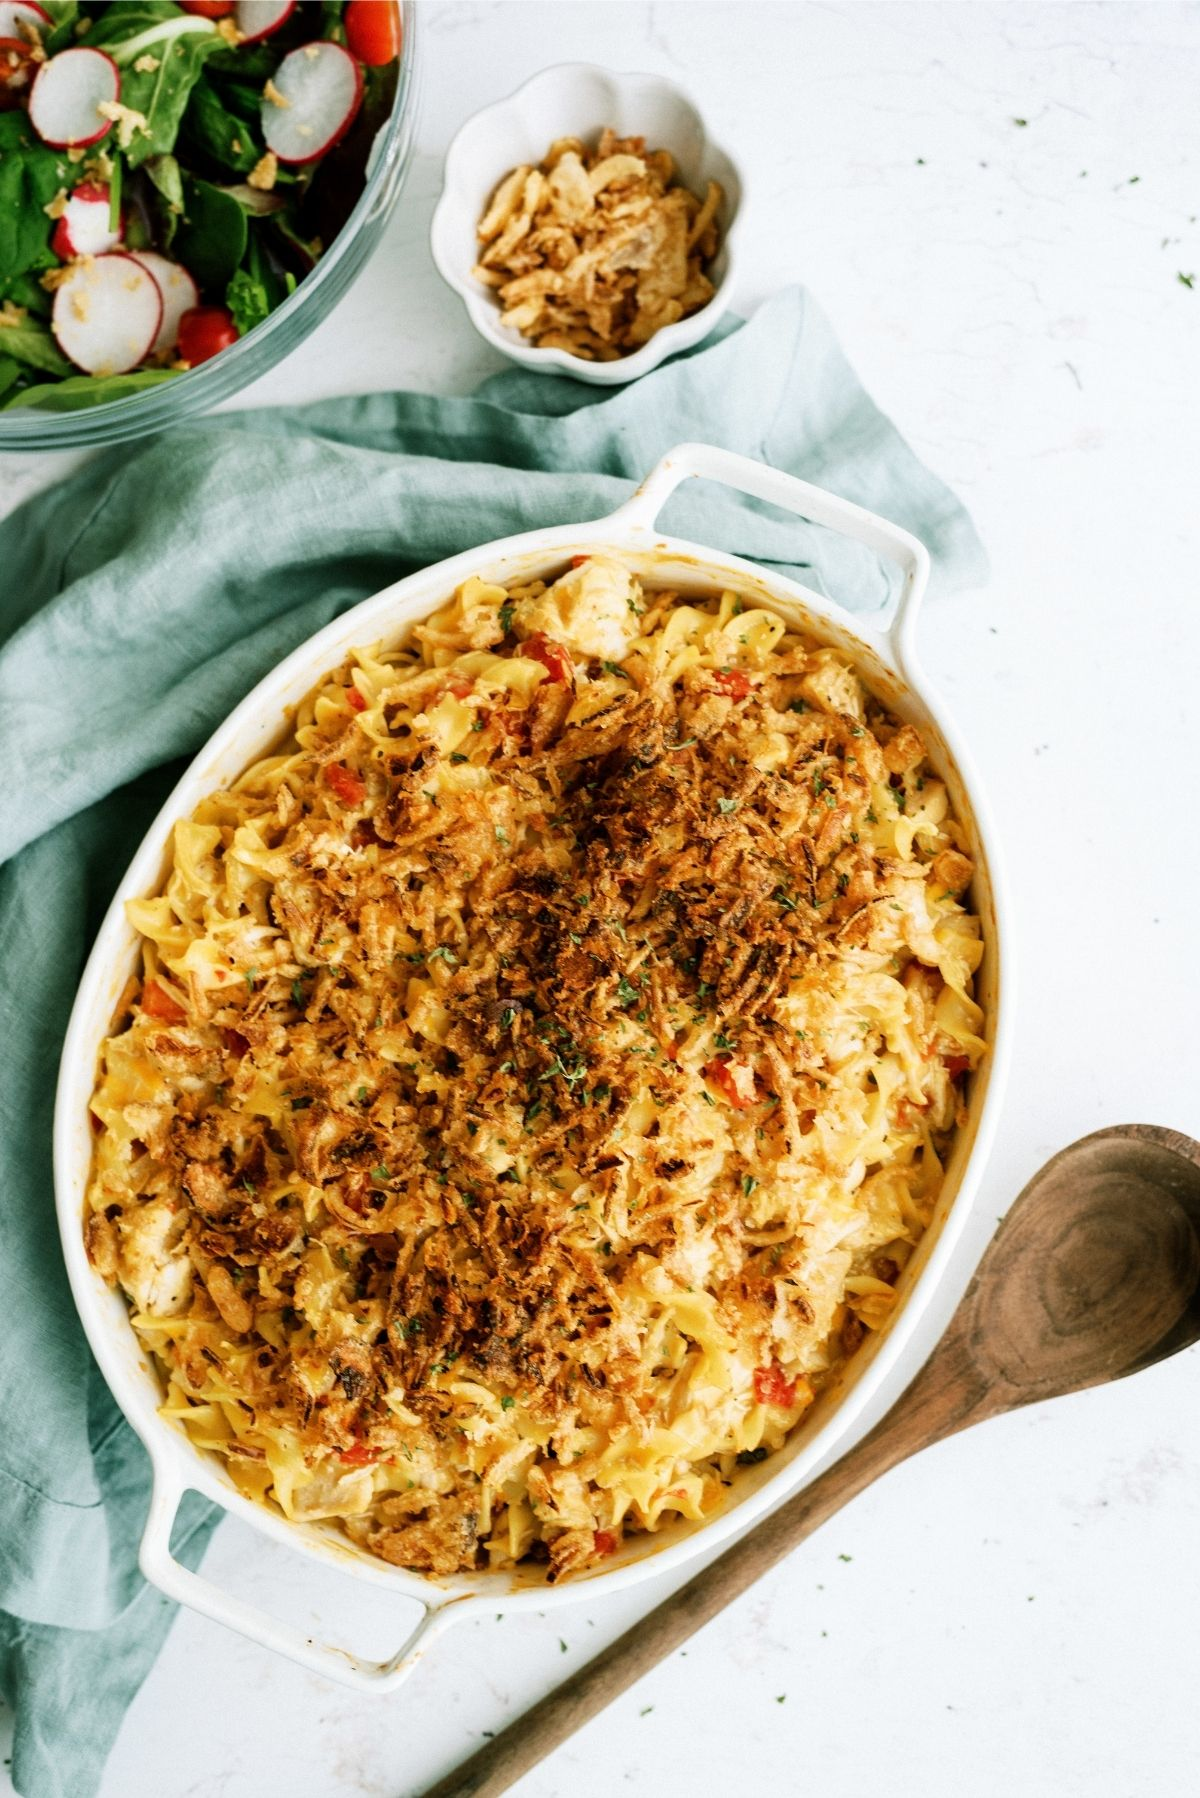 French Onion Chicken Noodle Casserole in a white casserole dish with a wooden spoon and bowl of side salad